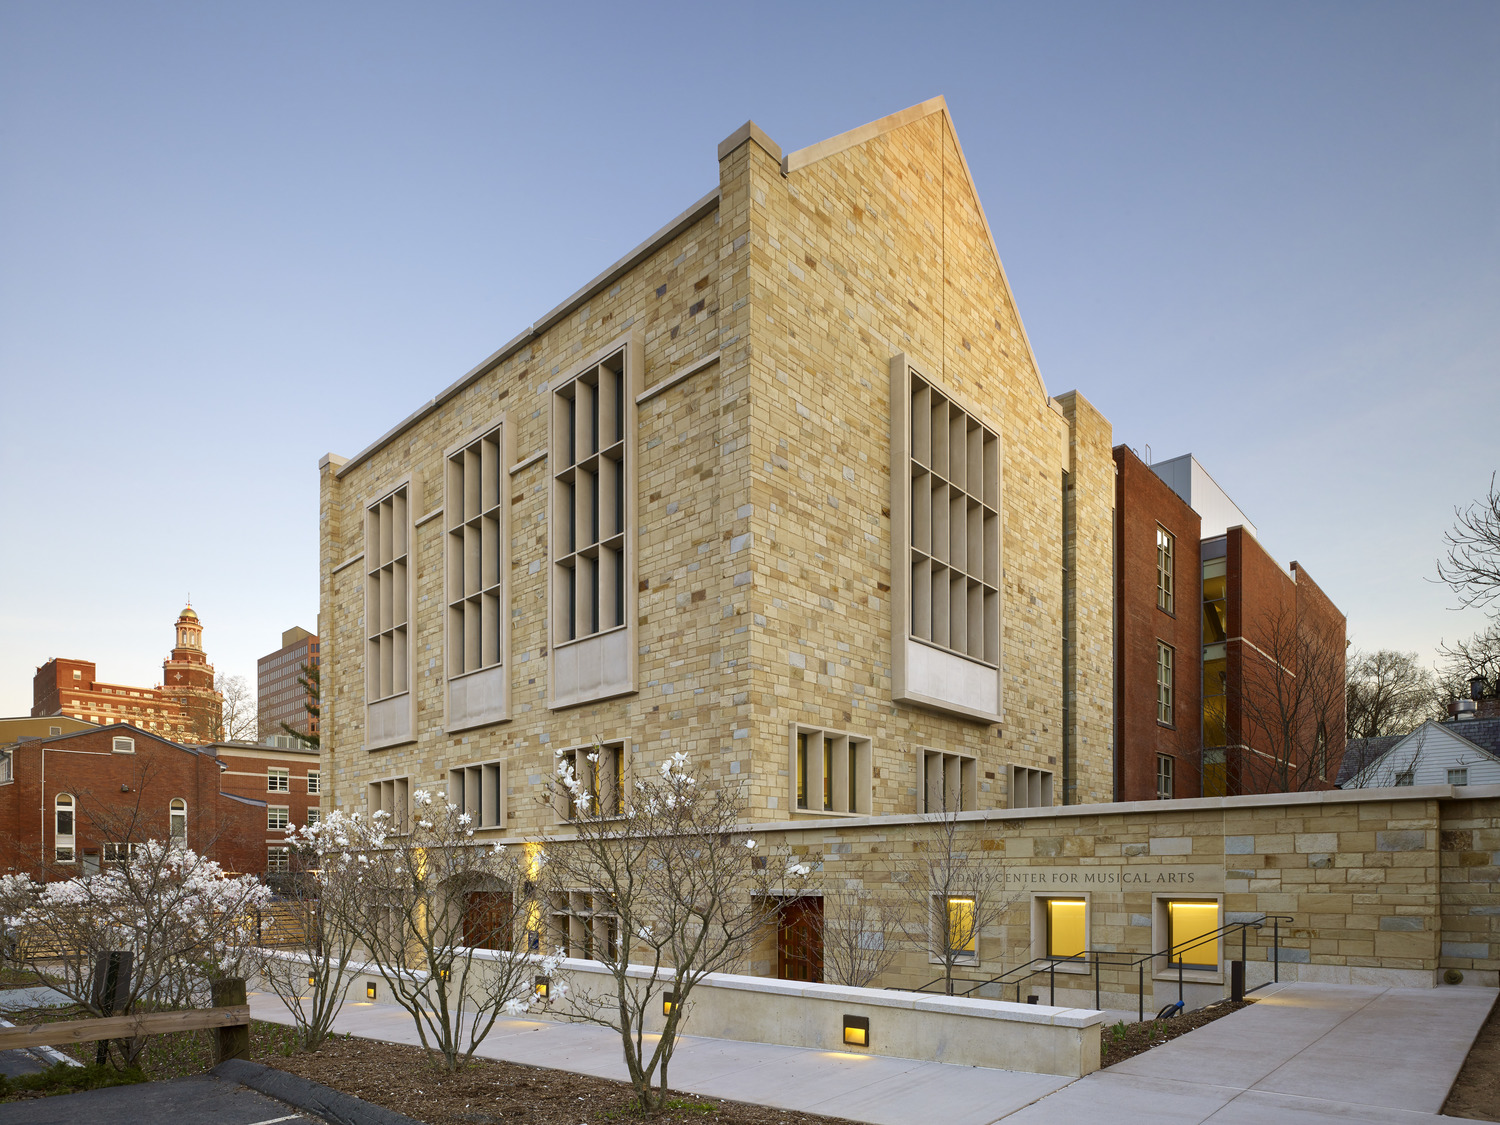 Yale School of Music - Adams Center for Musical Arts